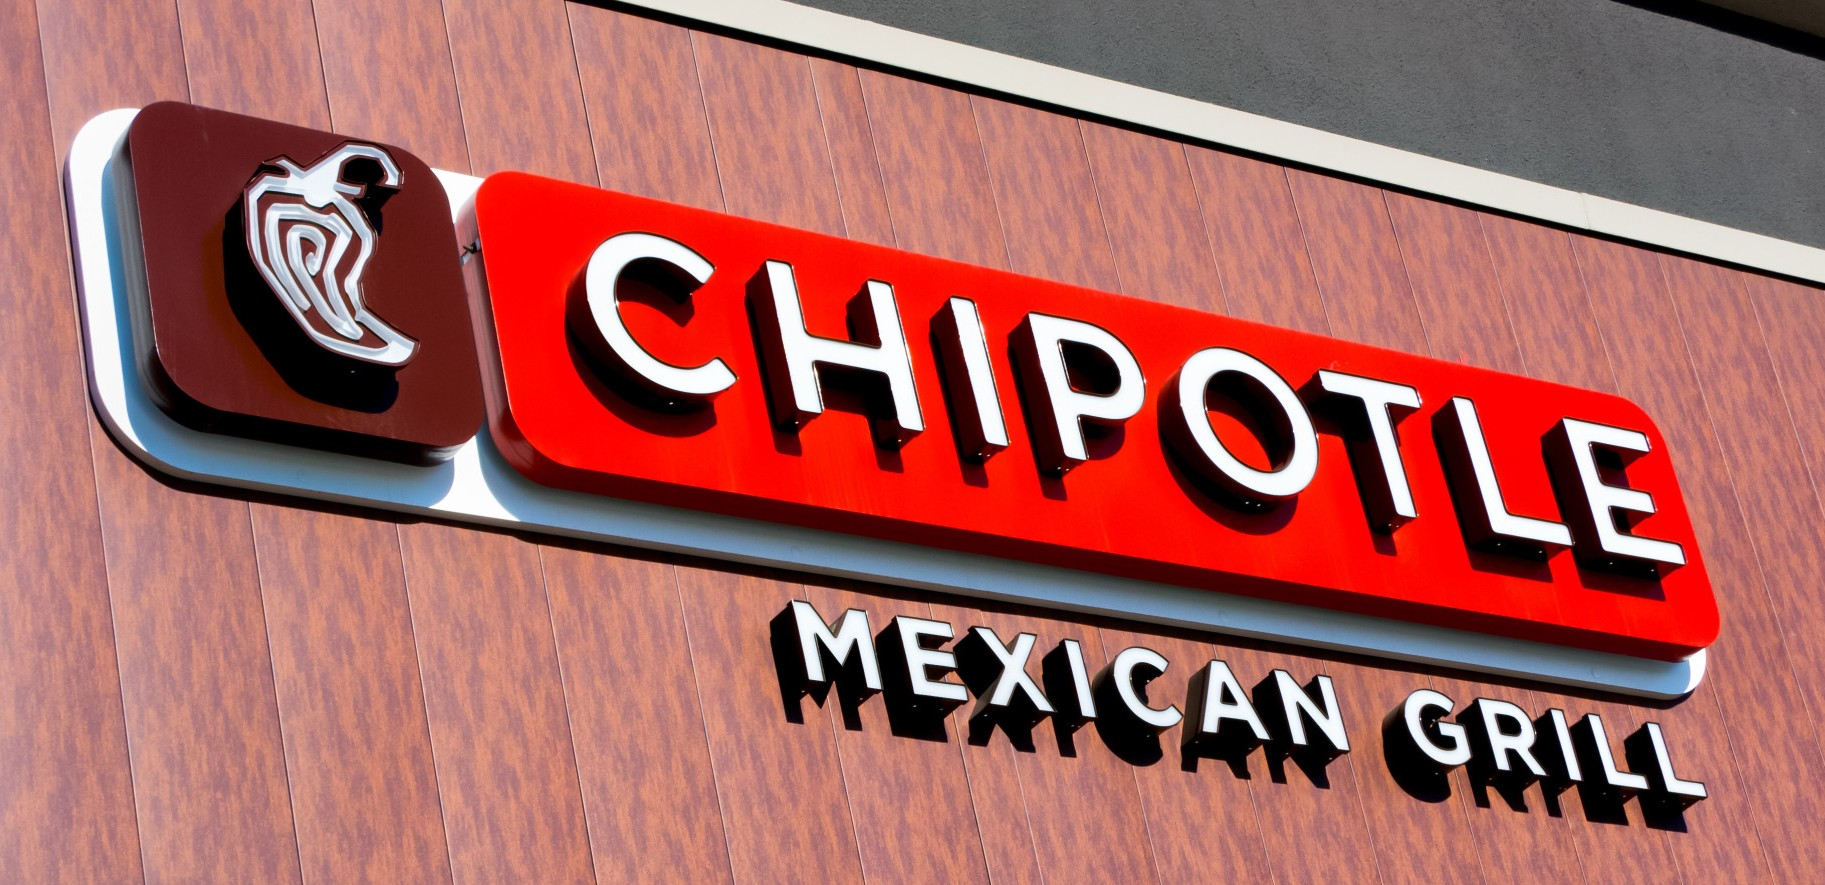 Chipotle wants customers to fall in love again with new ad - Chipotle mexican grill ticker symbol ...